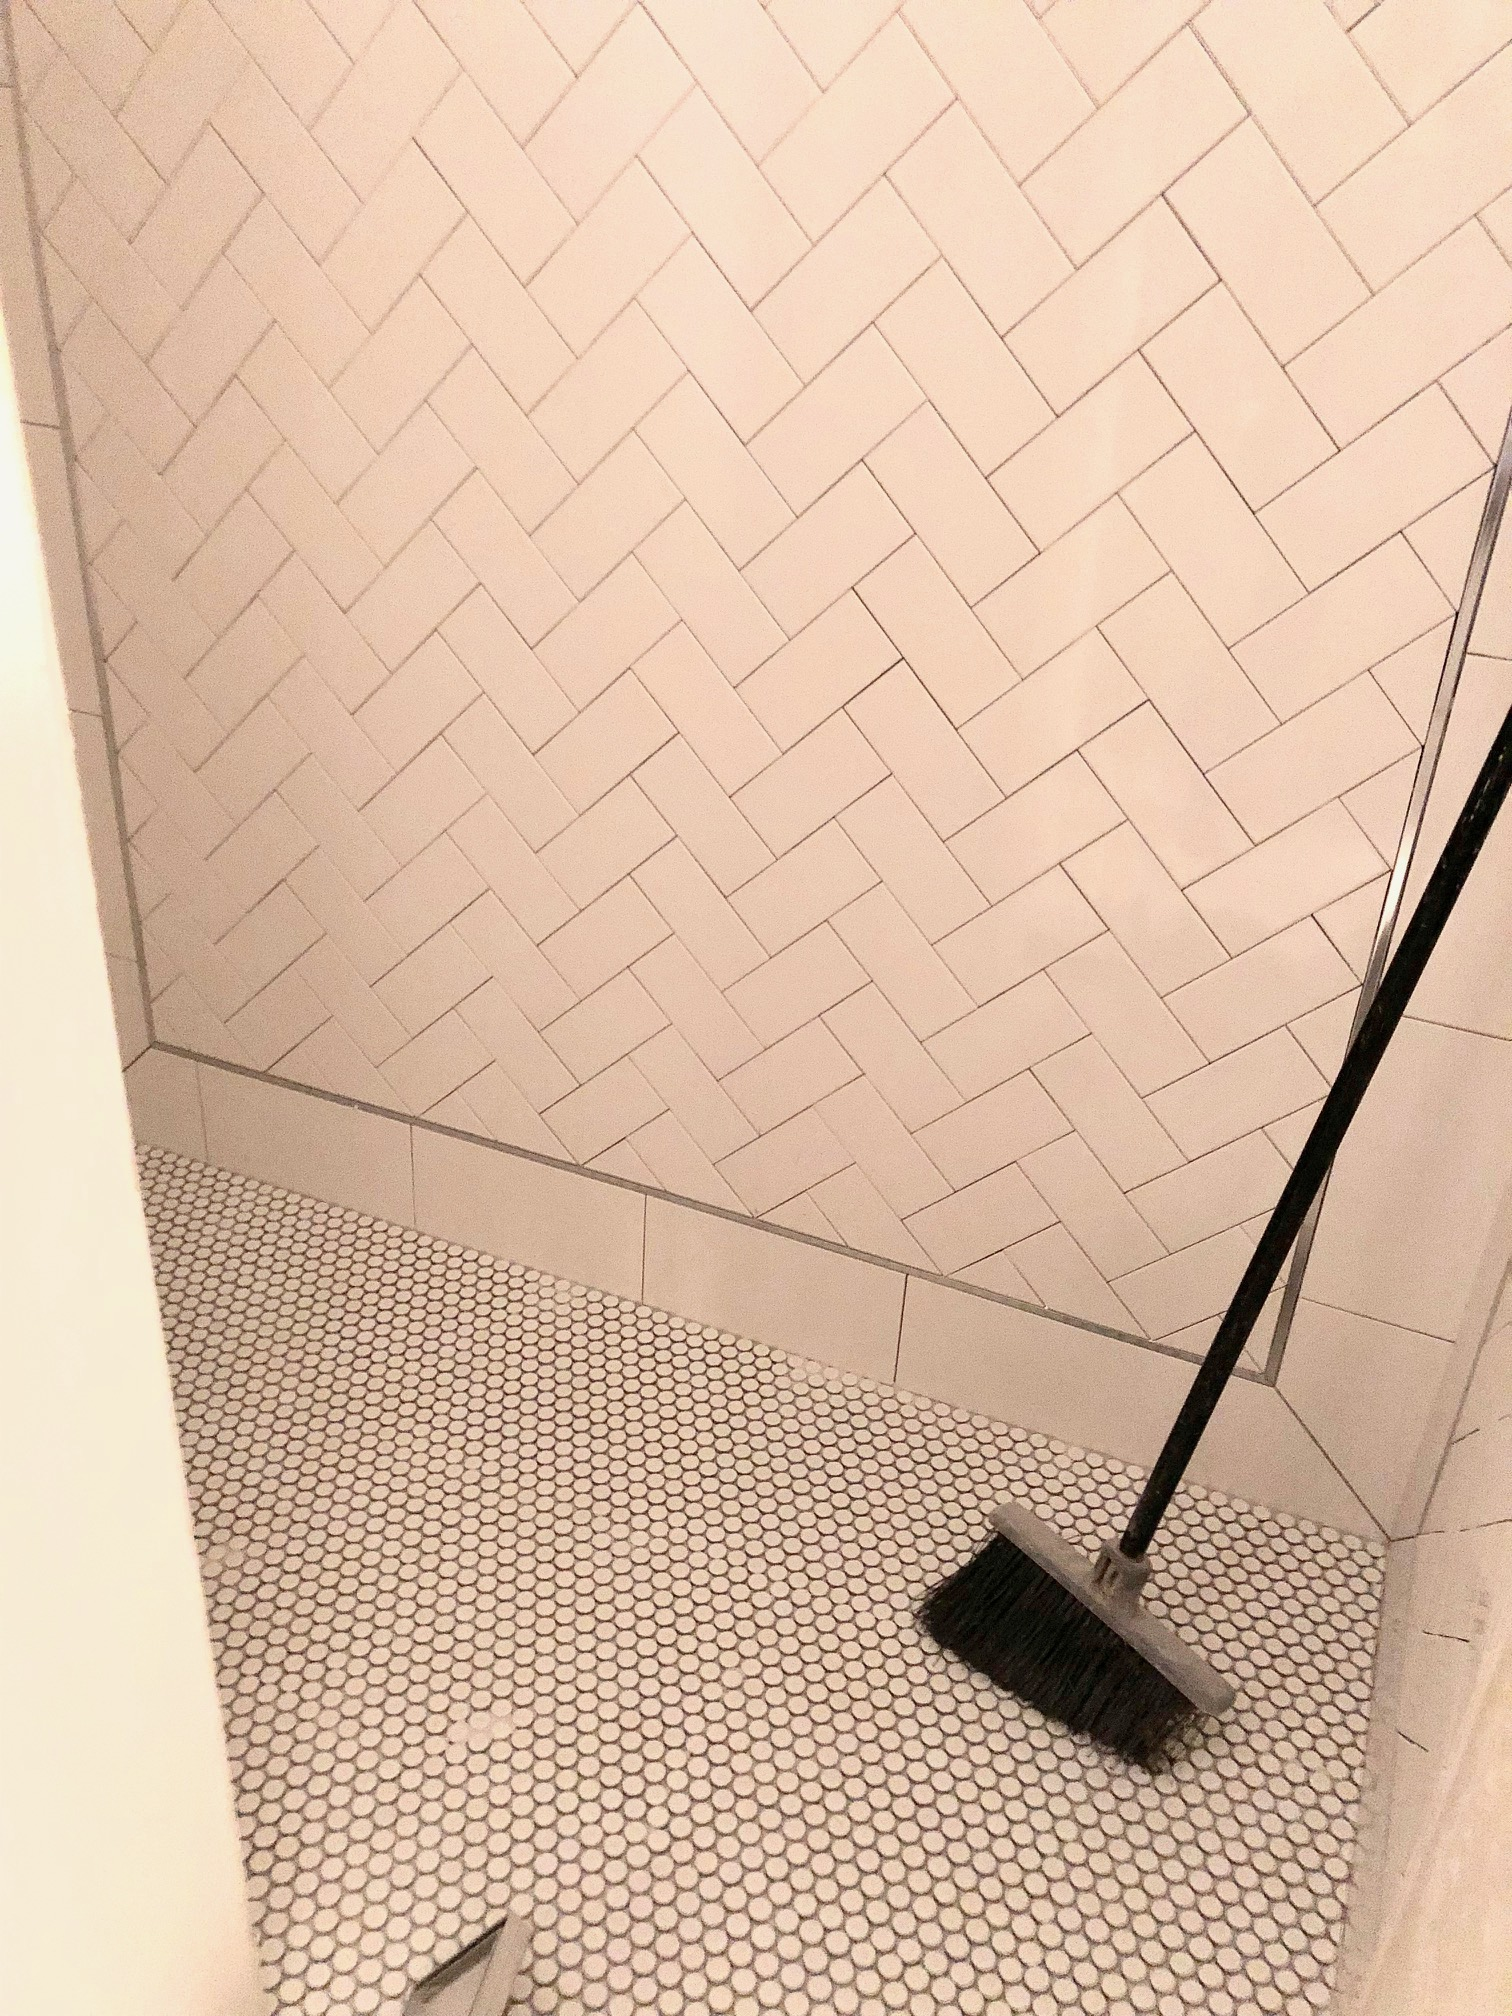 Just for fun, we thought we'd share the shower tile found in the casita bath as well. We love the penny-tile floor and herringbone pattern on the walls as they are both classics in our opinion!